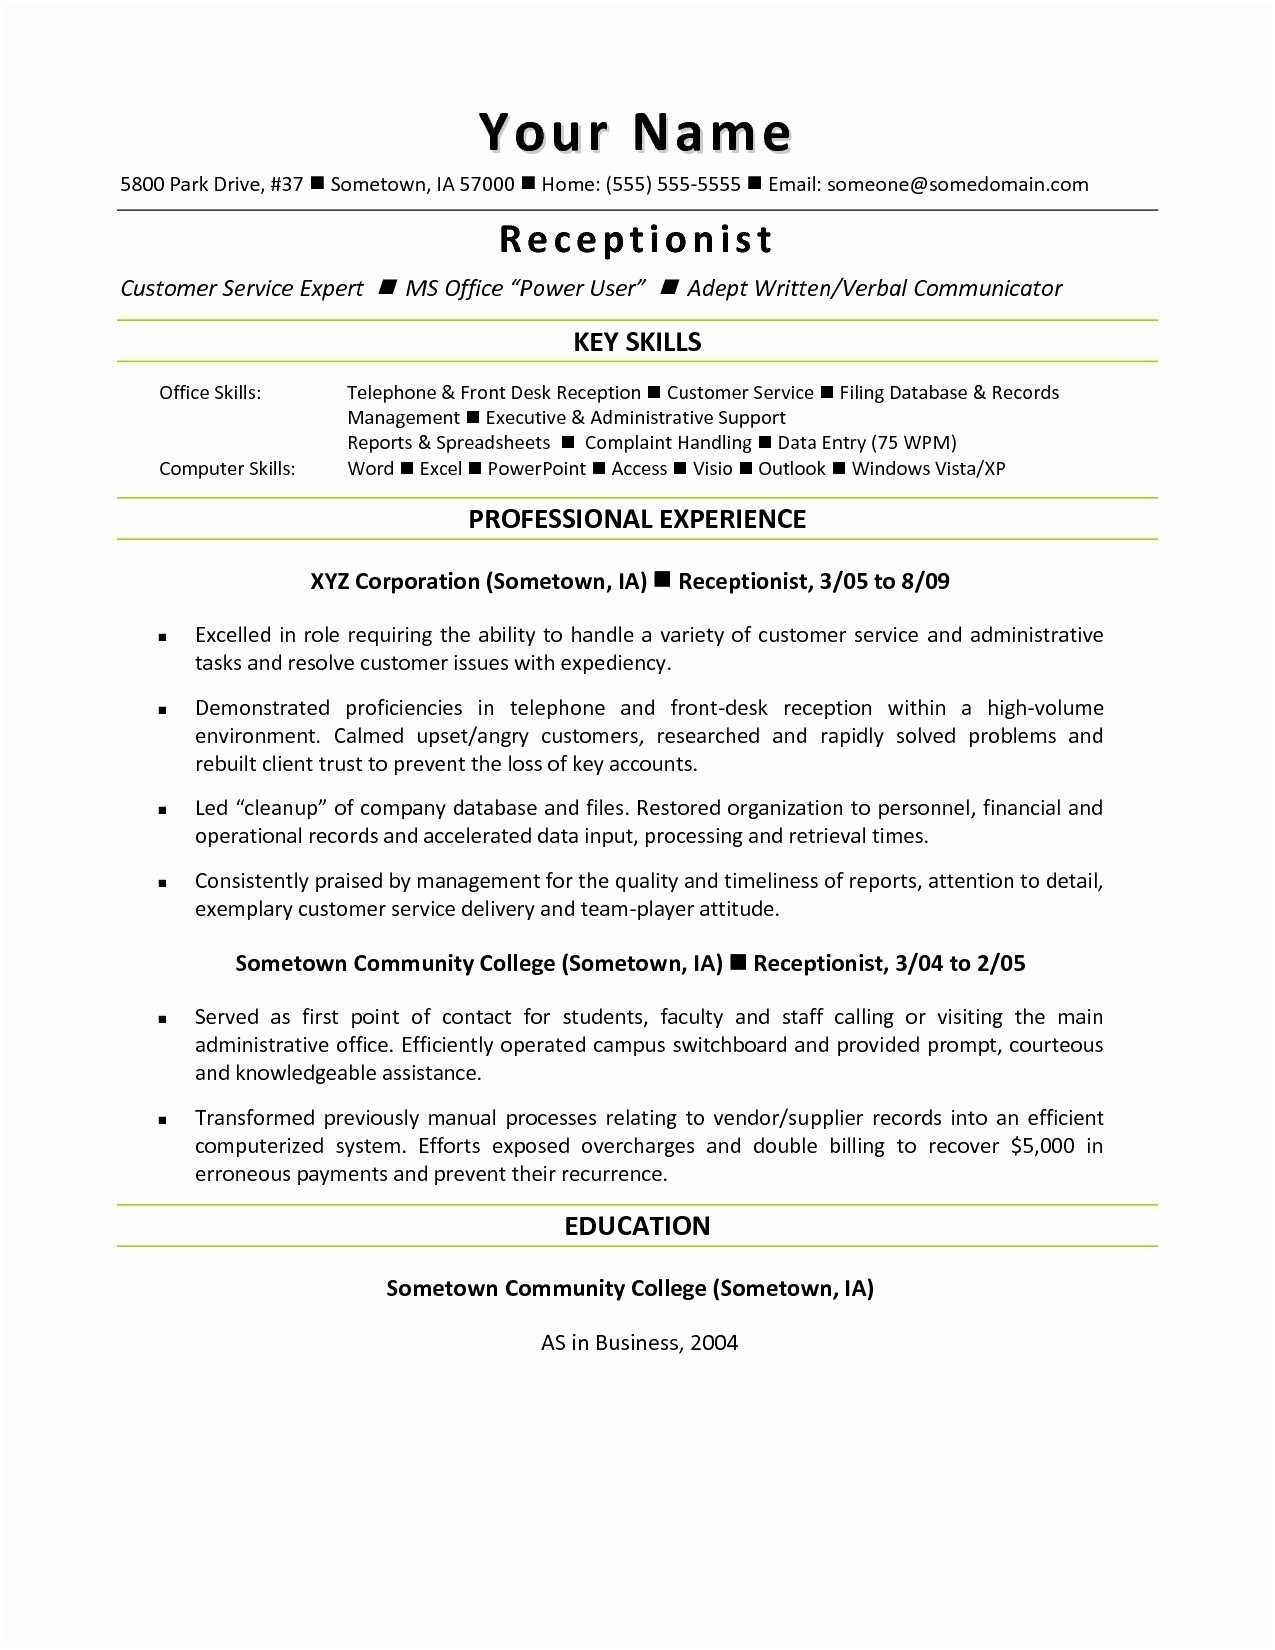 microsoft word cover letter template Collection-Resume Cover Letter Template Word Valid 24 Unique Resume Microsoft Word 14-q